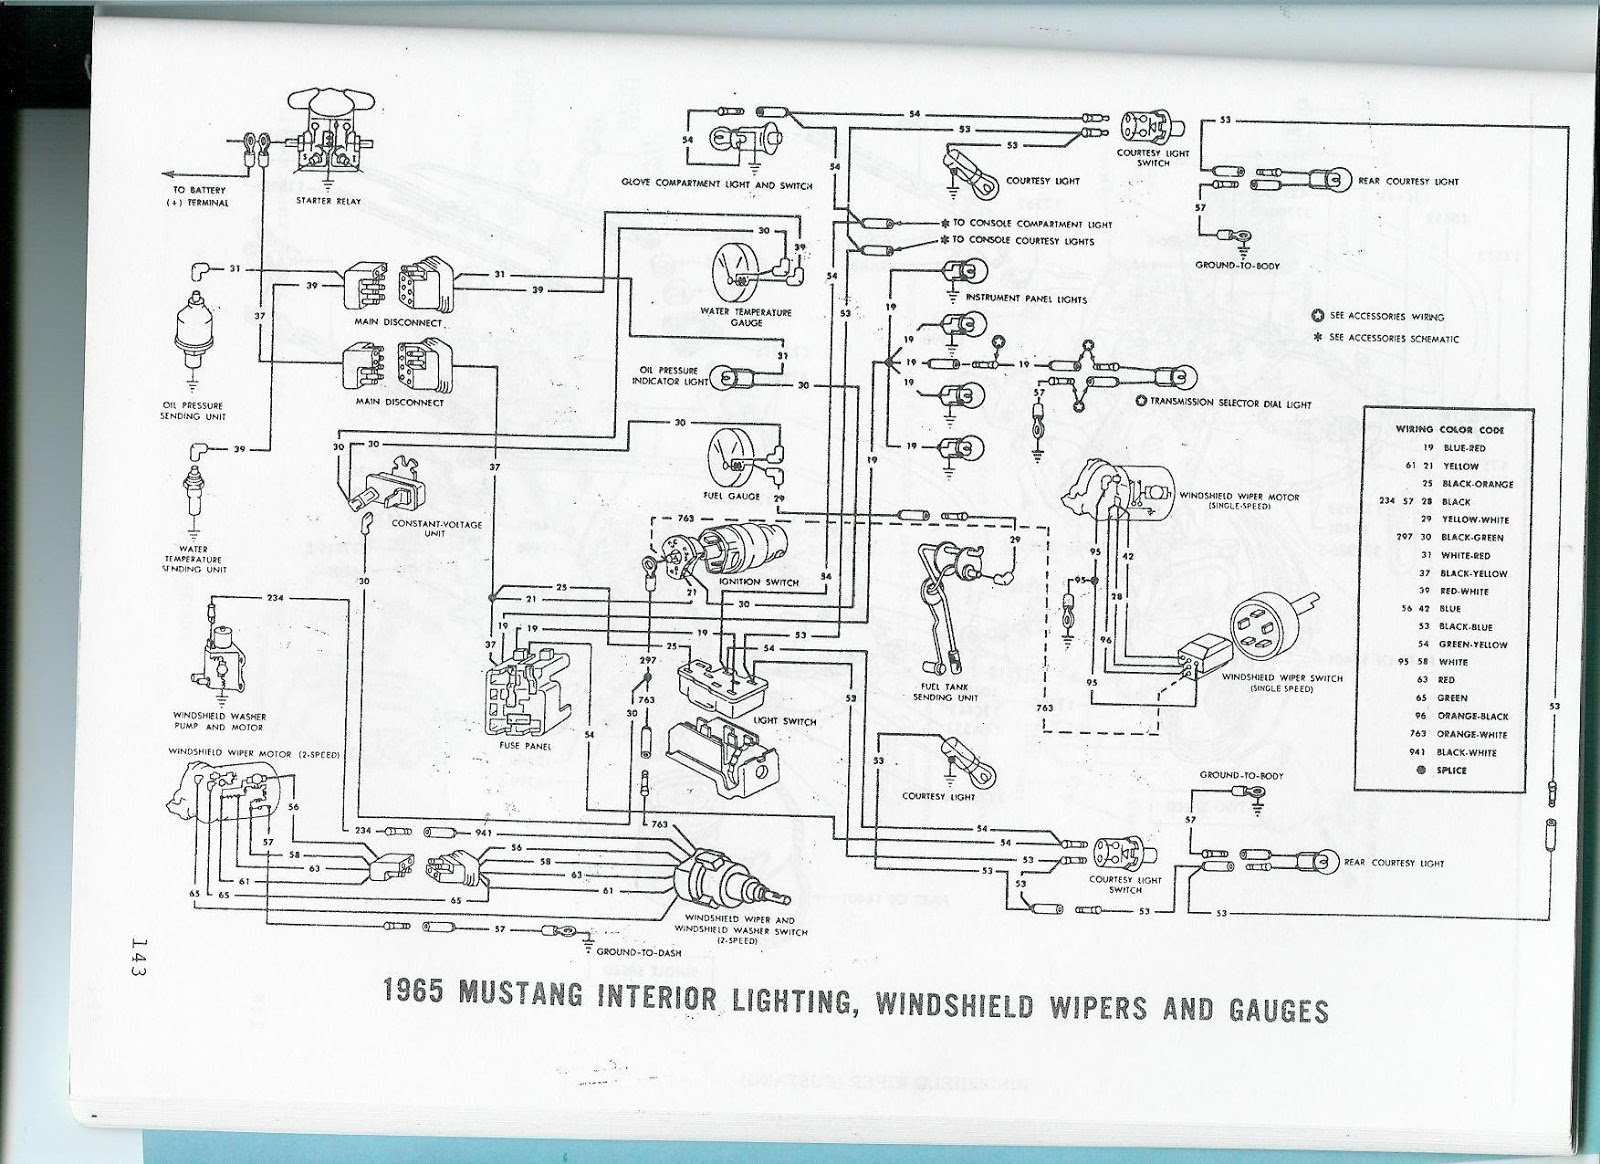 Admirable 1965 Mustang Fuse Diagram Wiring Library Wiring Cloud Geisbieswglorg